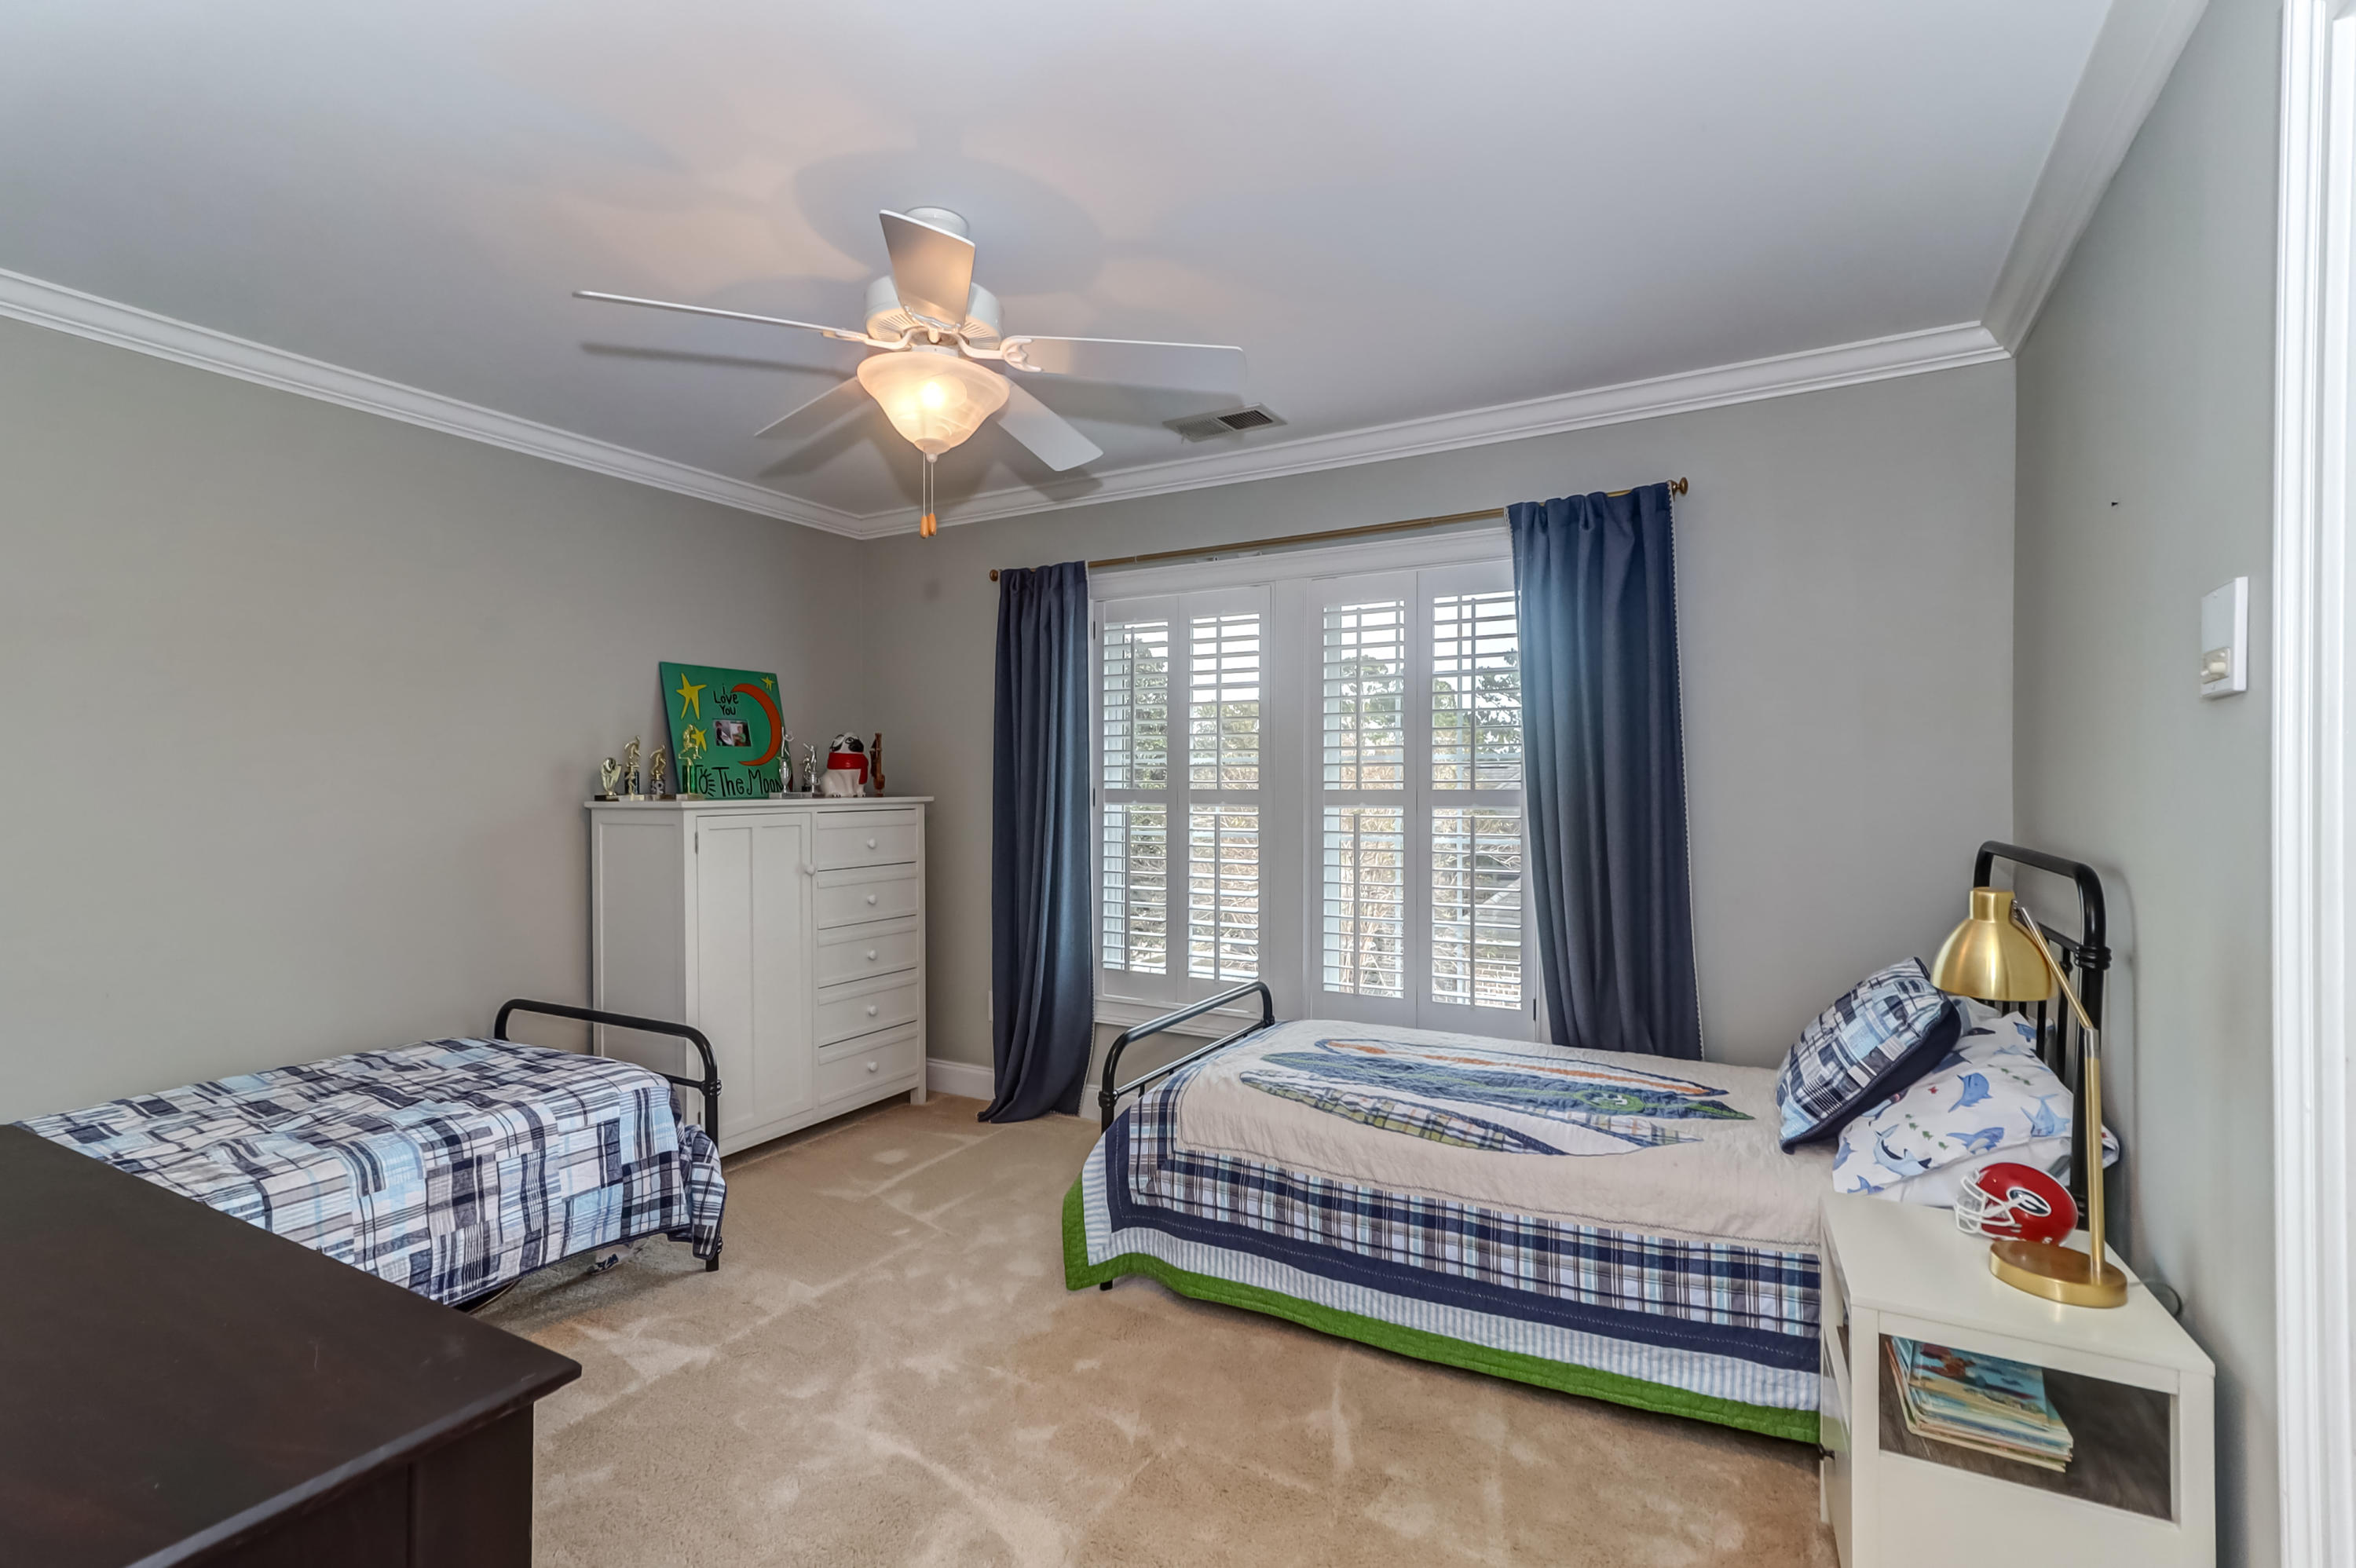 Woodward Pointe Homes For Sale - 657 White Chapel, Charleston, SC - 3